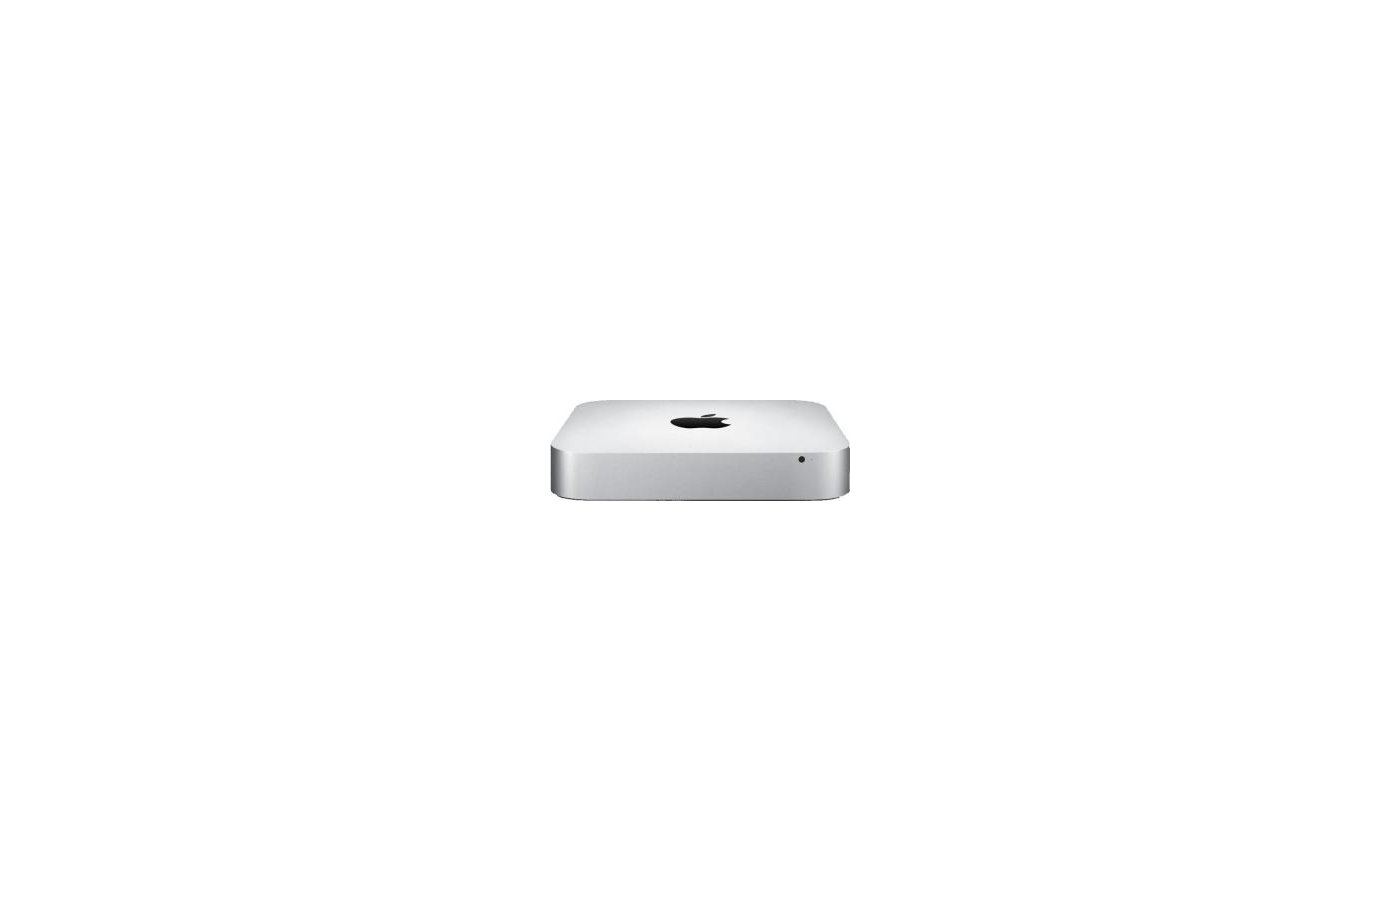 Системный блок Apple Mac mini /MGEM2RU/A/